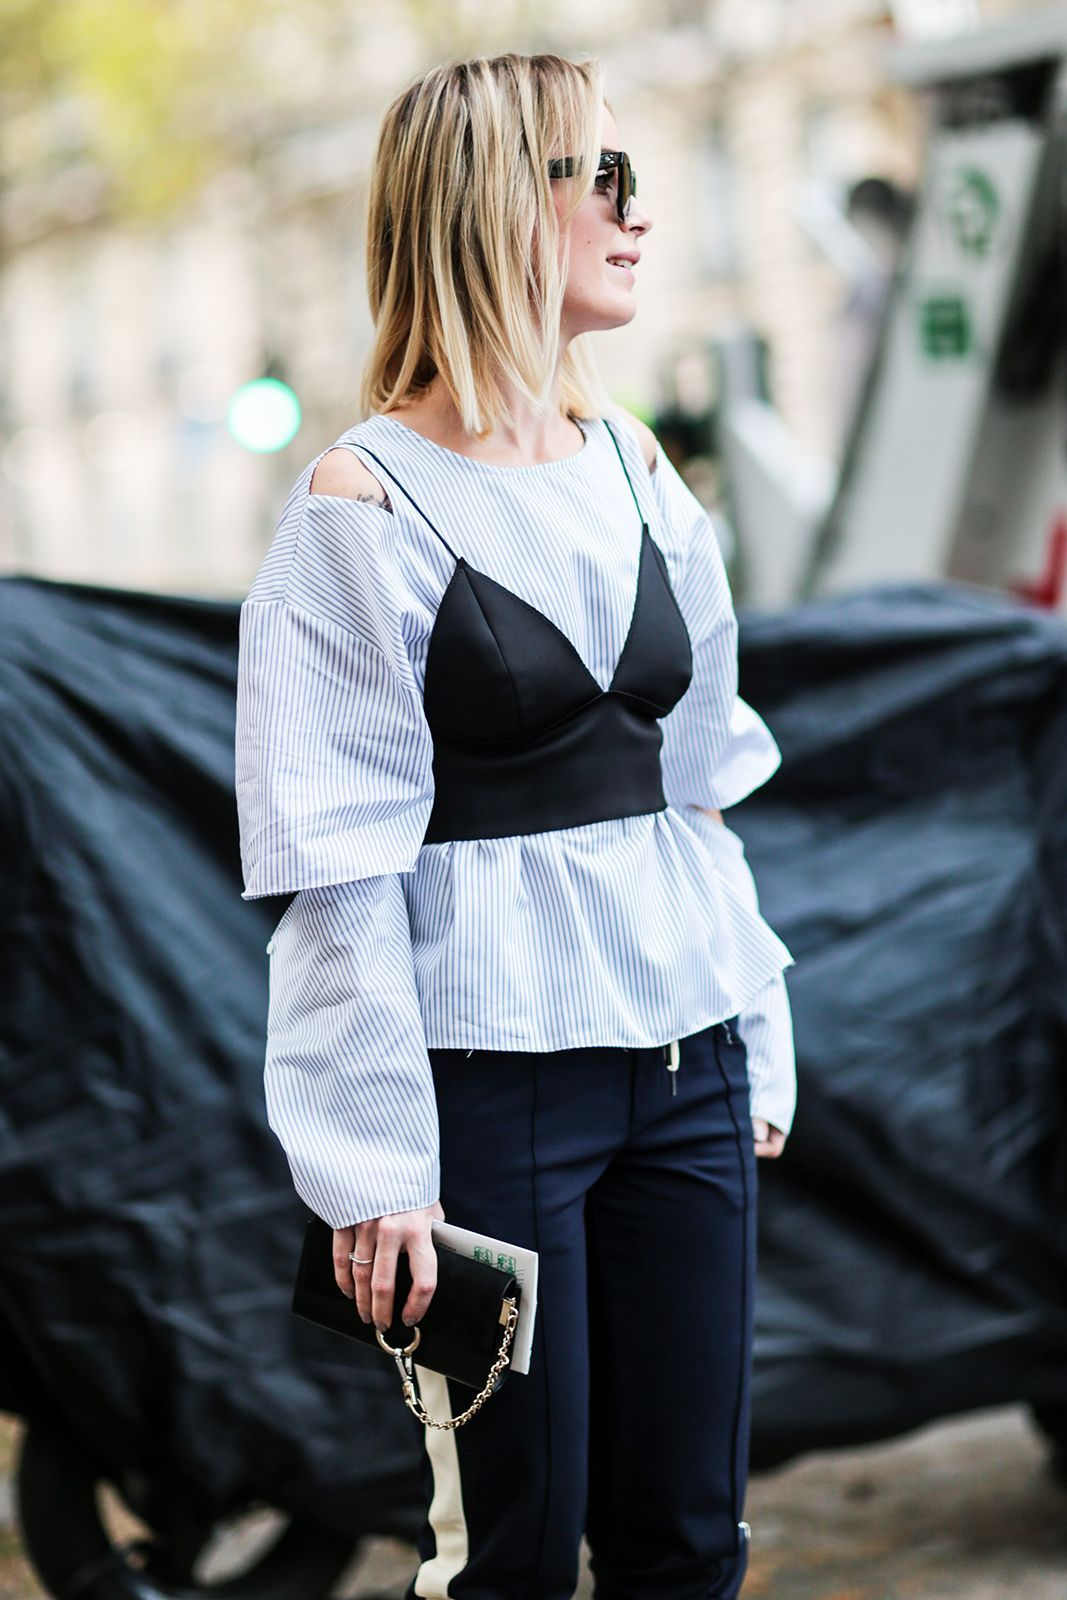 The Best Street Style At Paris Fashion Week SS17 #refinery29  http://www.refinery29.uk/2016/10/124657/street-style-paris-fashion-week-ss17#slide-22  More tips on how to layer up your summer wardrobe for the colder months....